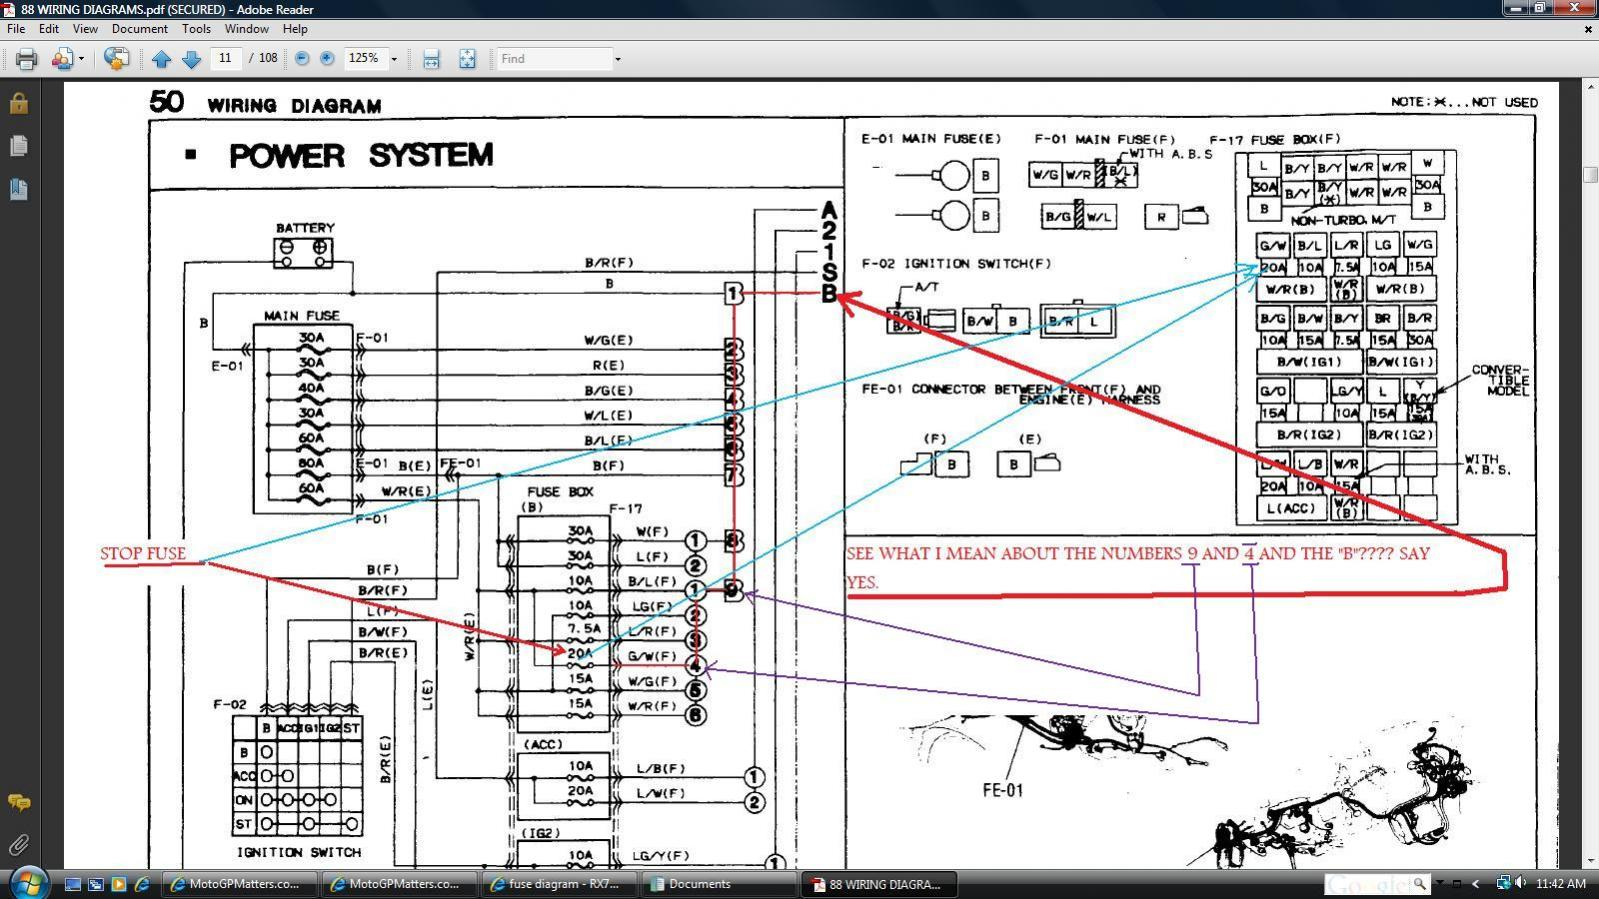 haltech e6k wiring diagram rx7 lucas ford tractor ignition switch fuse rx7club mazda forum